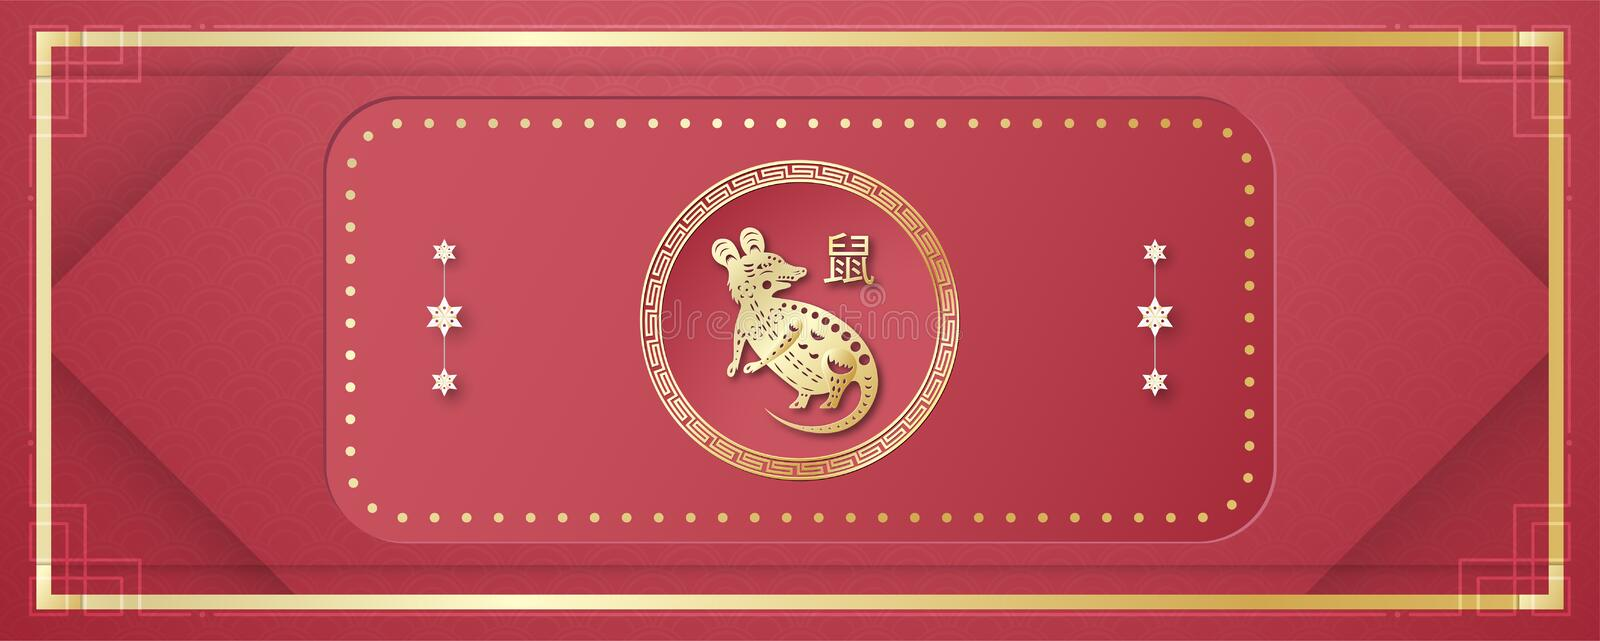 Chinese new year 2020, year of the rat. Template design for invitation, poster, elegant packaging stock illustration